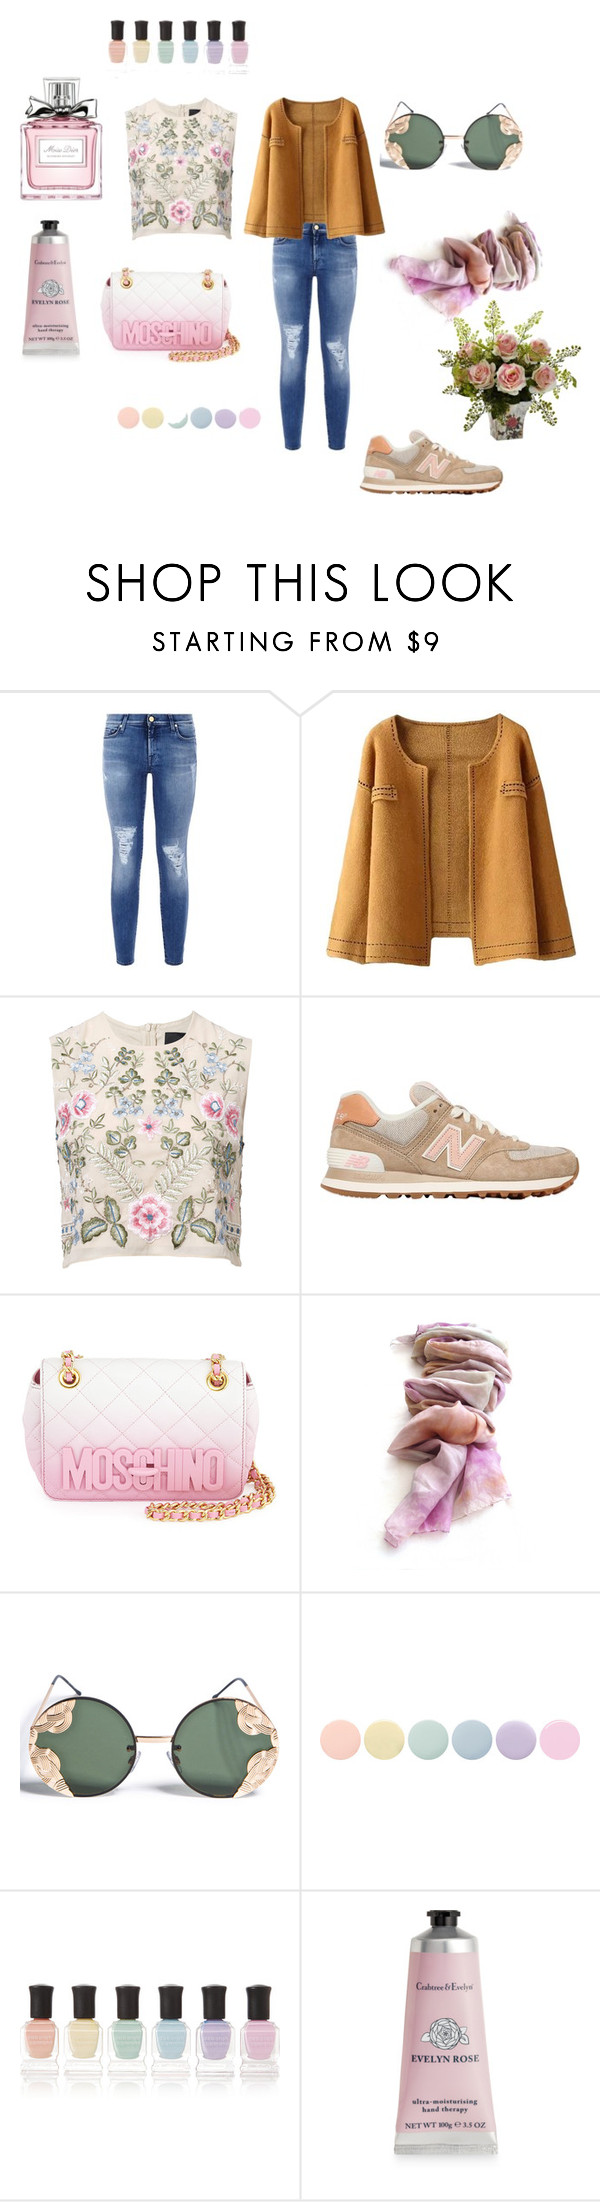 """Без названия #20"" by explorer-14023136256 ❤ liked on Polyvore featuring 7 For All Mankind, Needle & Thread, New Balance, Moschino, Spitfire, Deborah Lippmann, Therapy and Christian Dior"